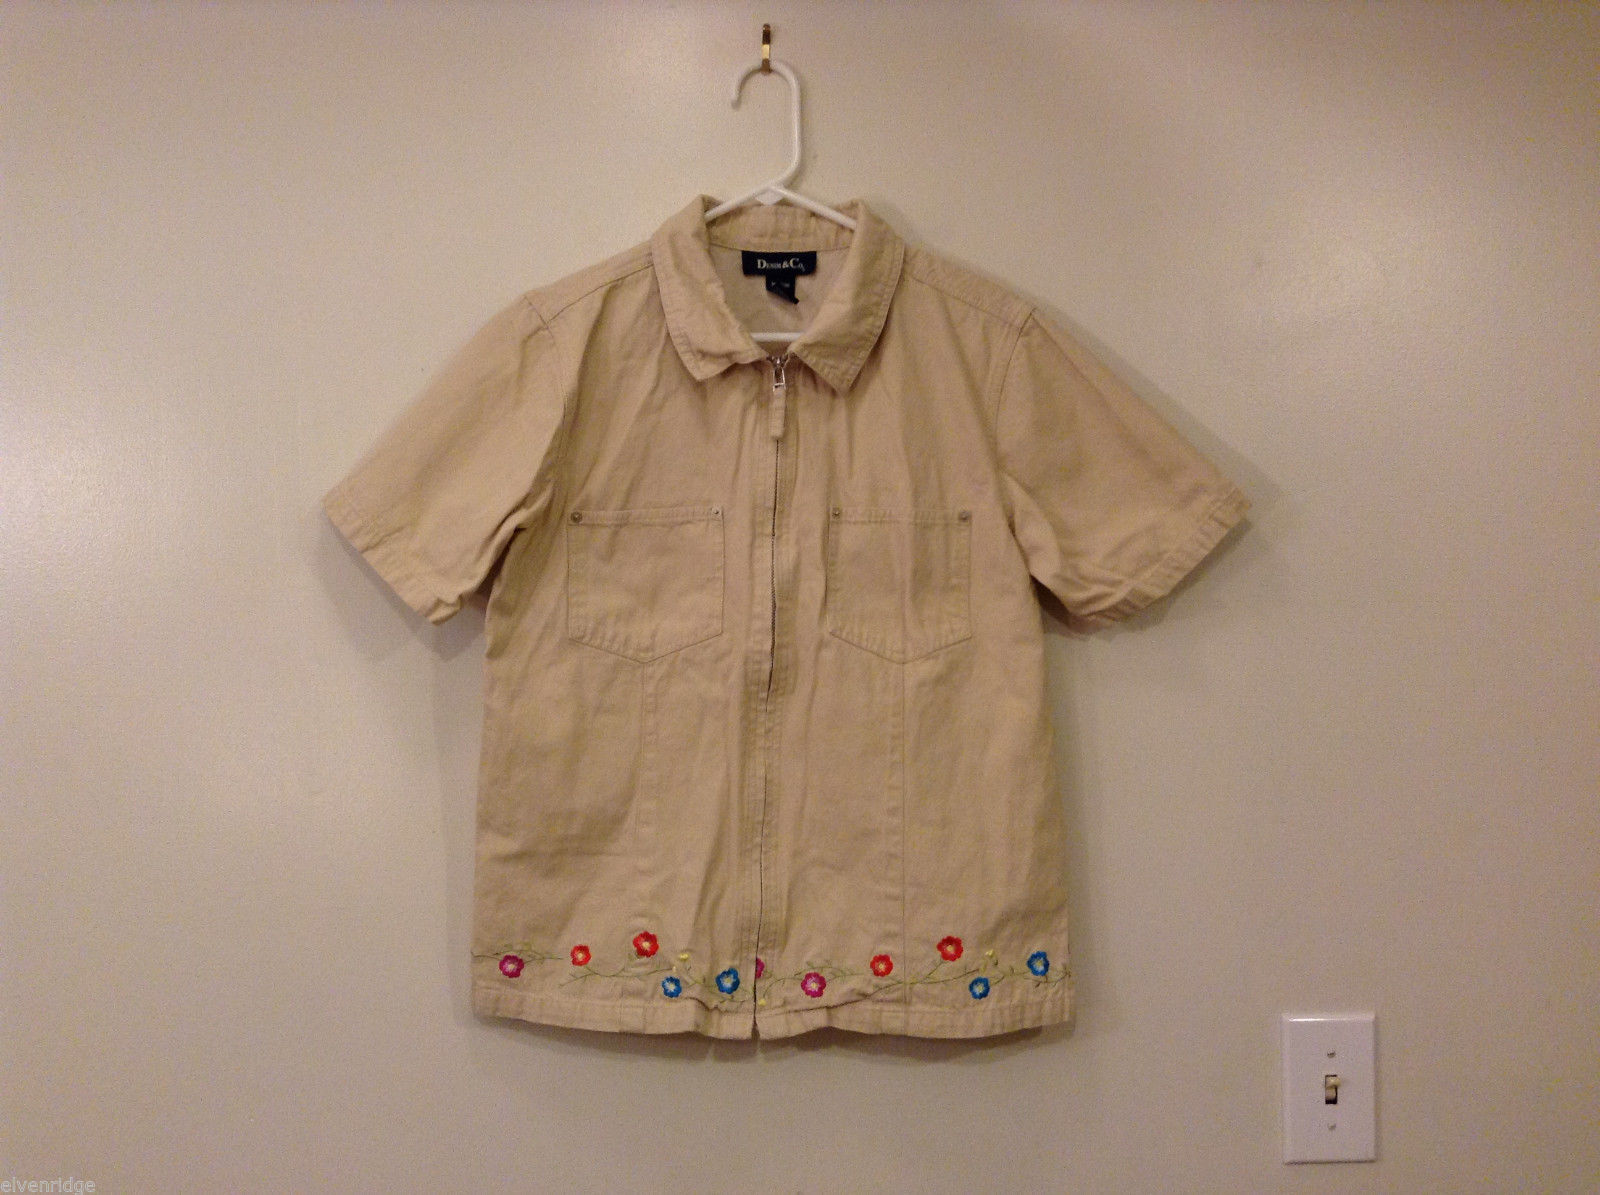 Denim & Co. Women's Size M Shirt w/ Embroidery 100% Cotton Beige Short Sleeves